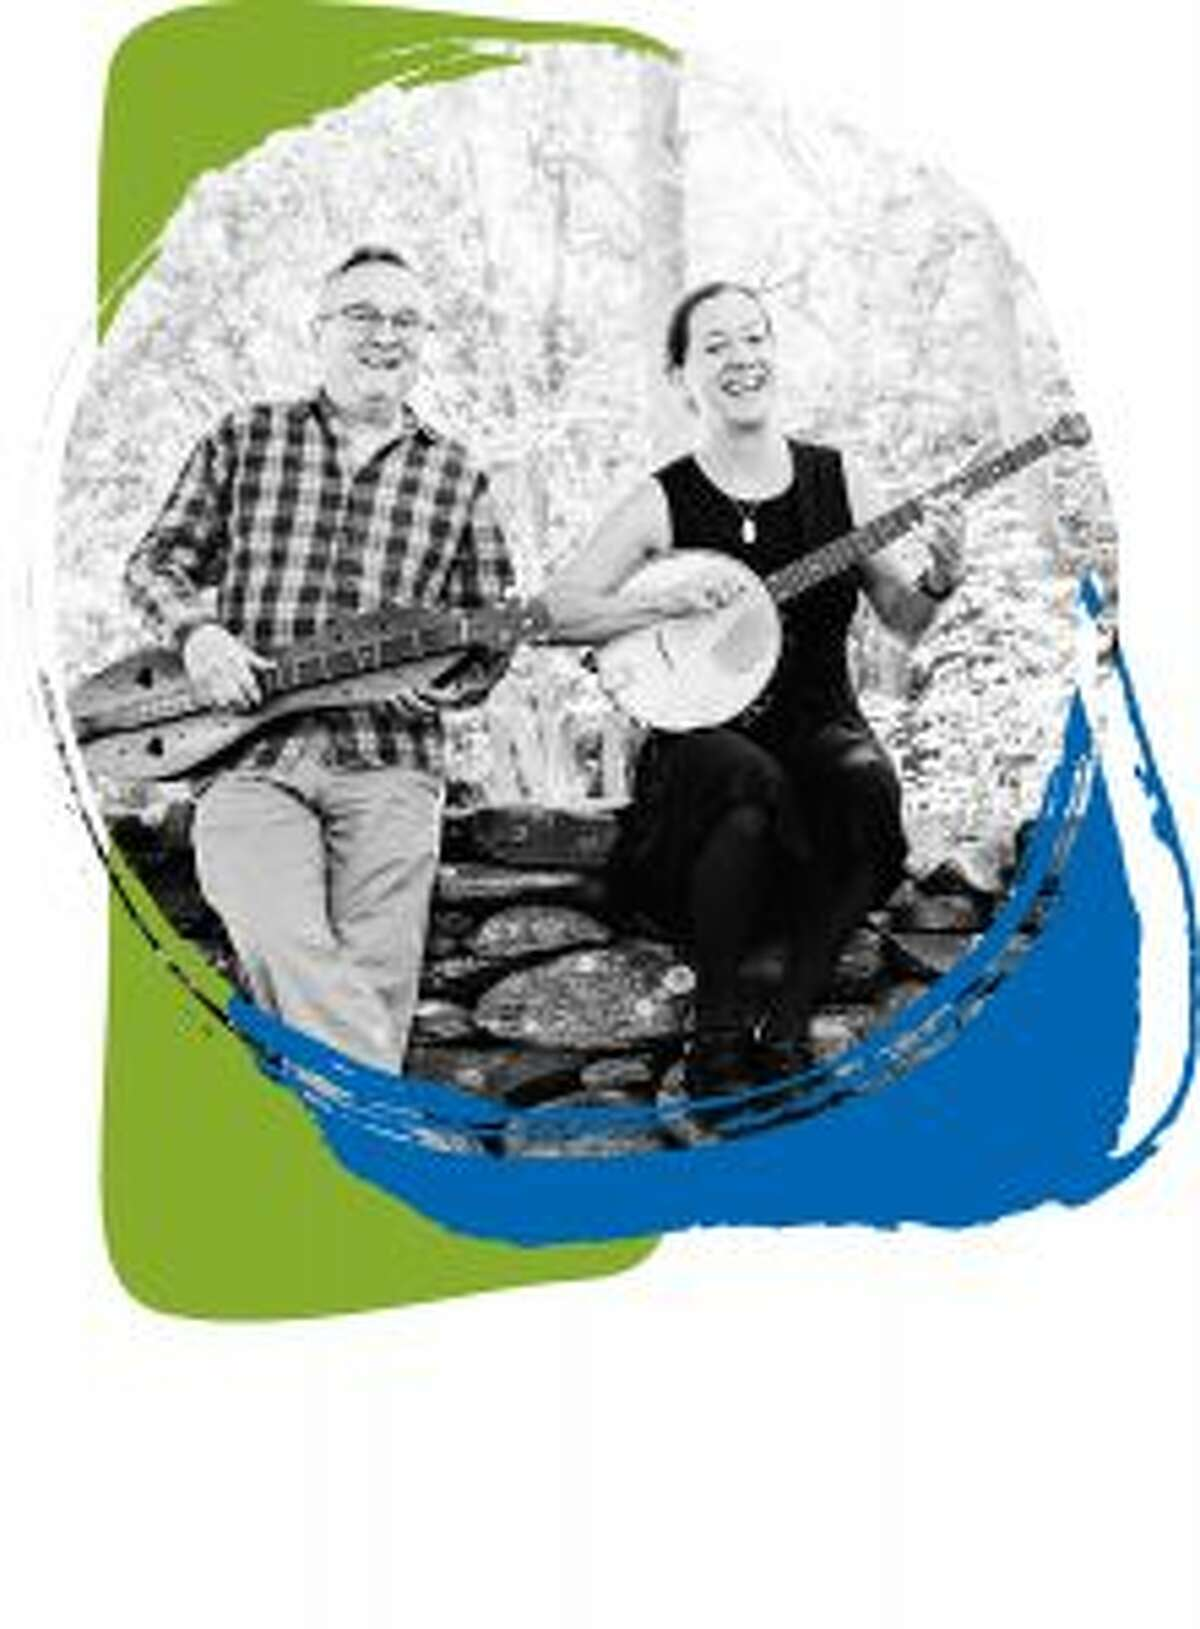 A list of the latest events going on at the New Canaan Library. Elwood Donnelly and Aubrey Atwater of musical duo Atwater-Donnelly will perform an outdoor concert on June 23 at New Canaan Library. - Contributed photo